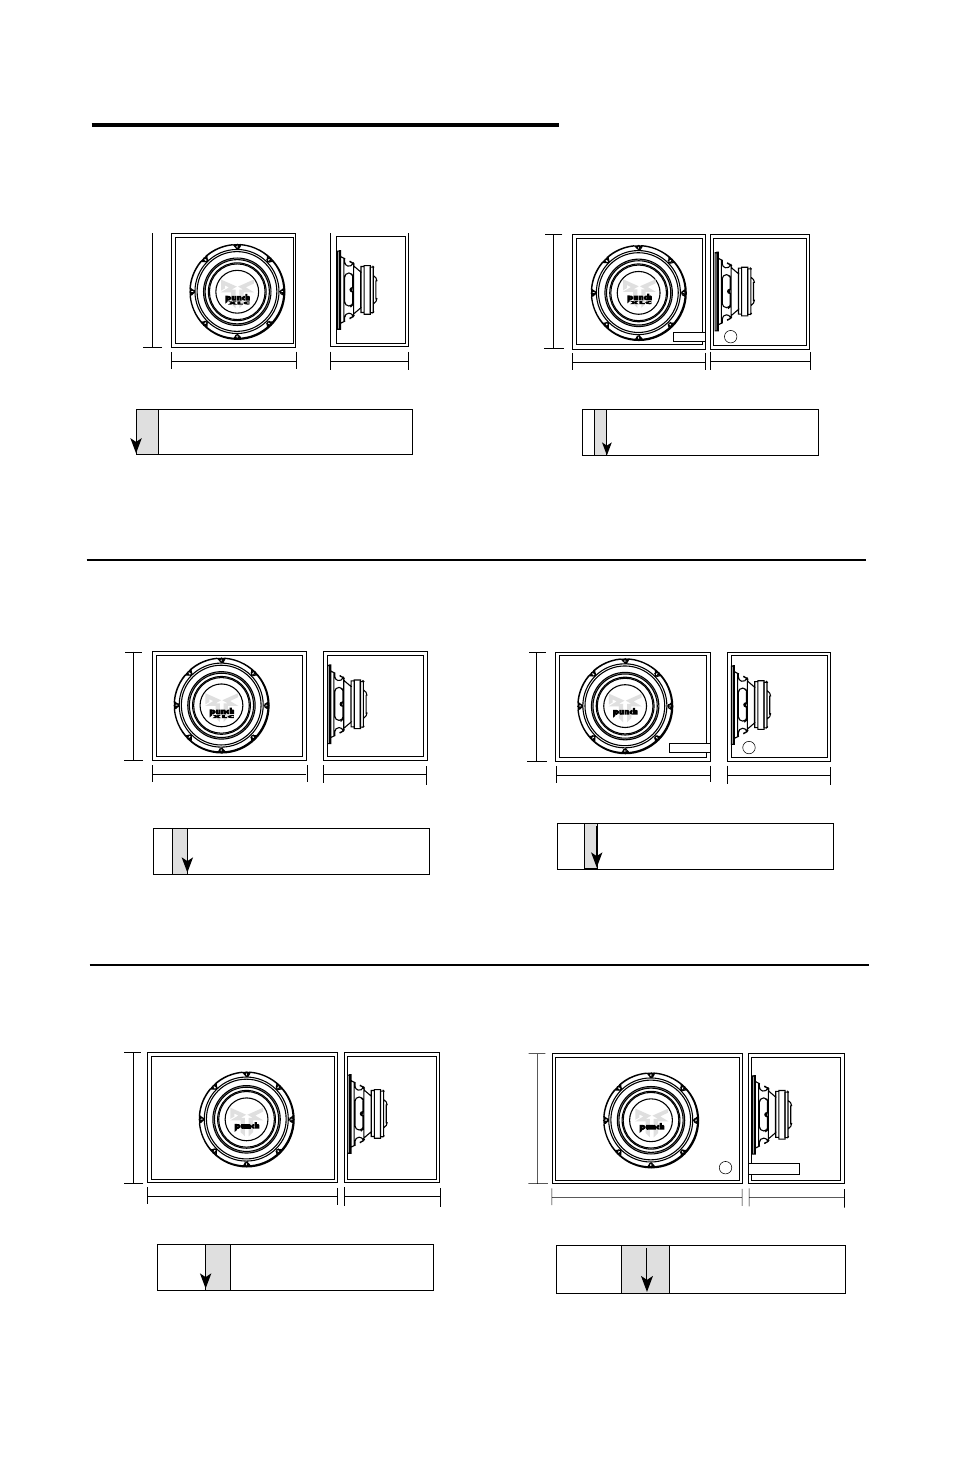 Ecommended Nclosures Punch He2 8 Hx2 Rockford Fosgate 12 Rfd1215 User Manual Page 6 16